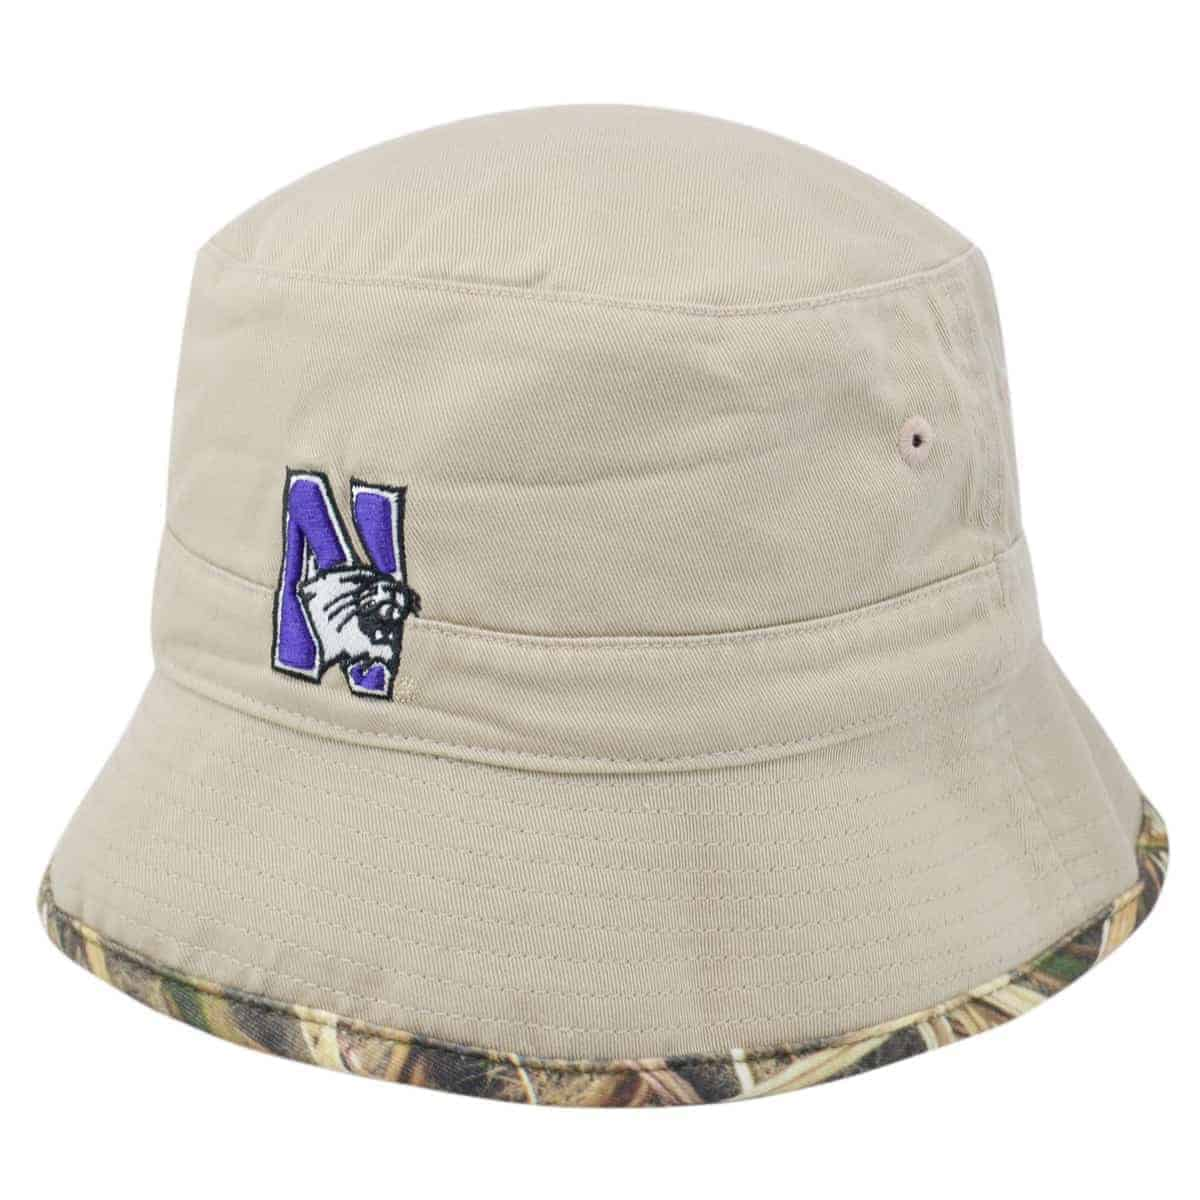 170da0f8c84c9 Northwestern Wildcats Tan Camo Reversible Floppy Bucket Hat with N-Cat  Design